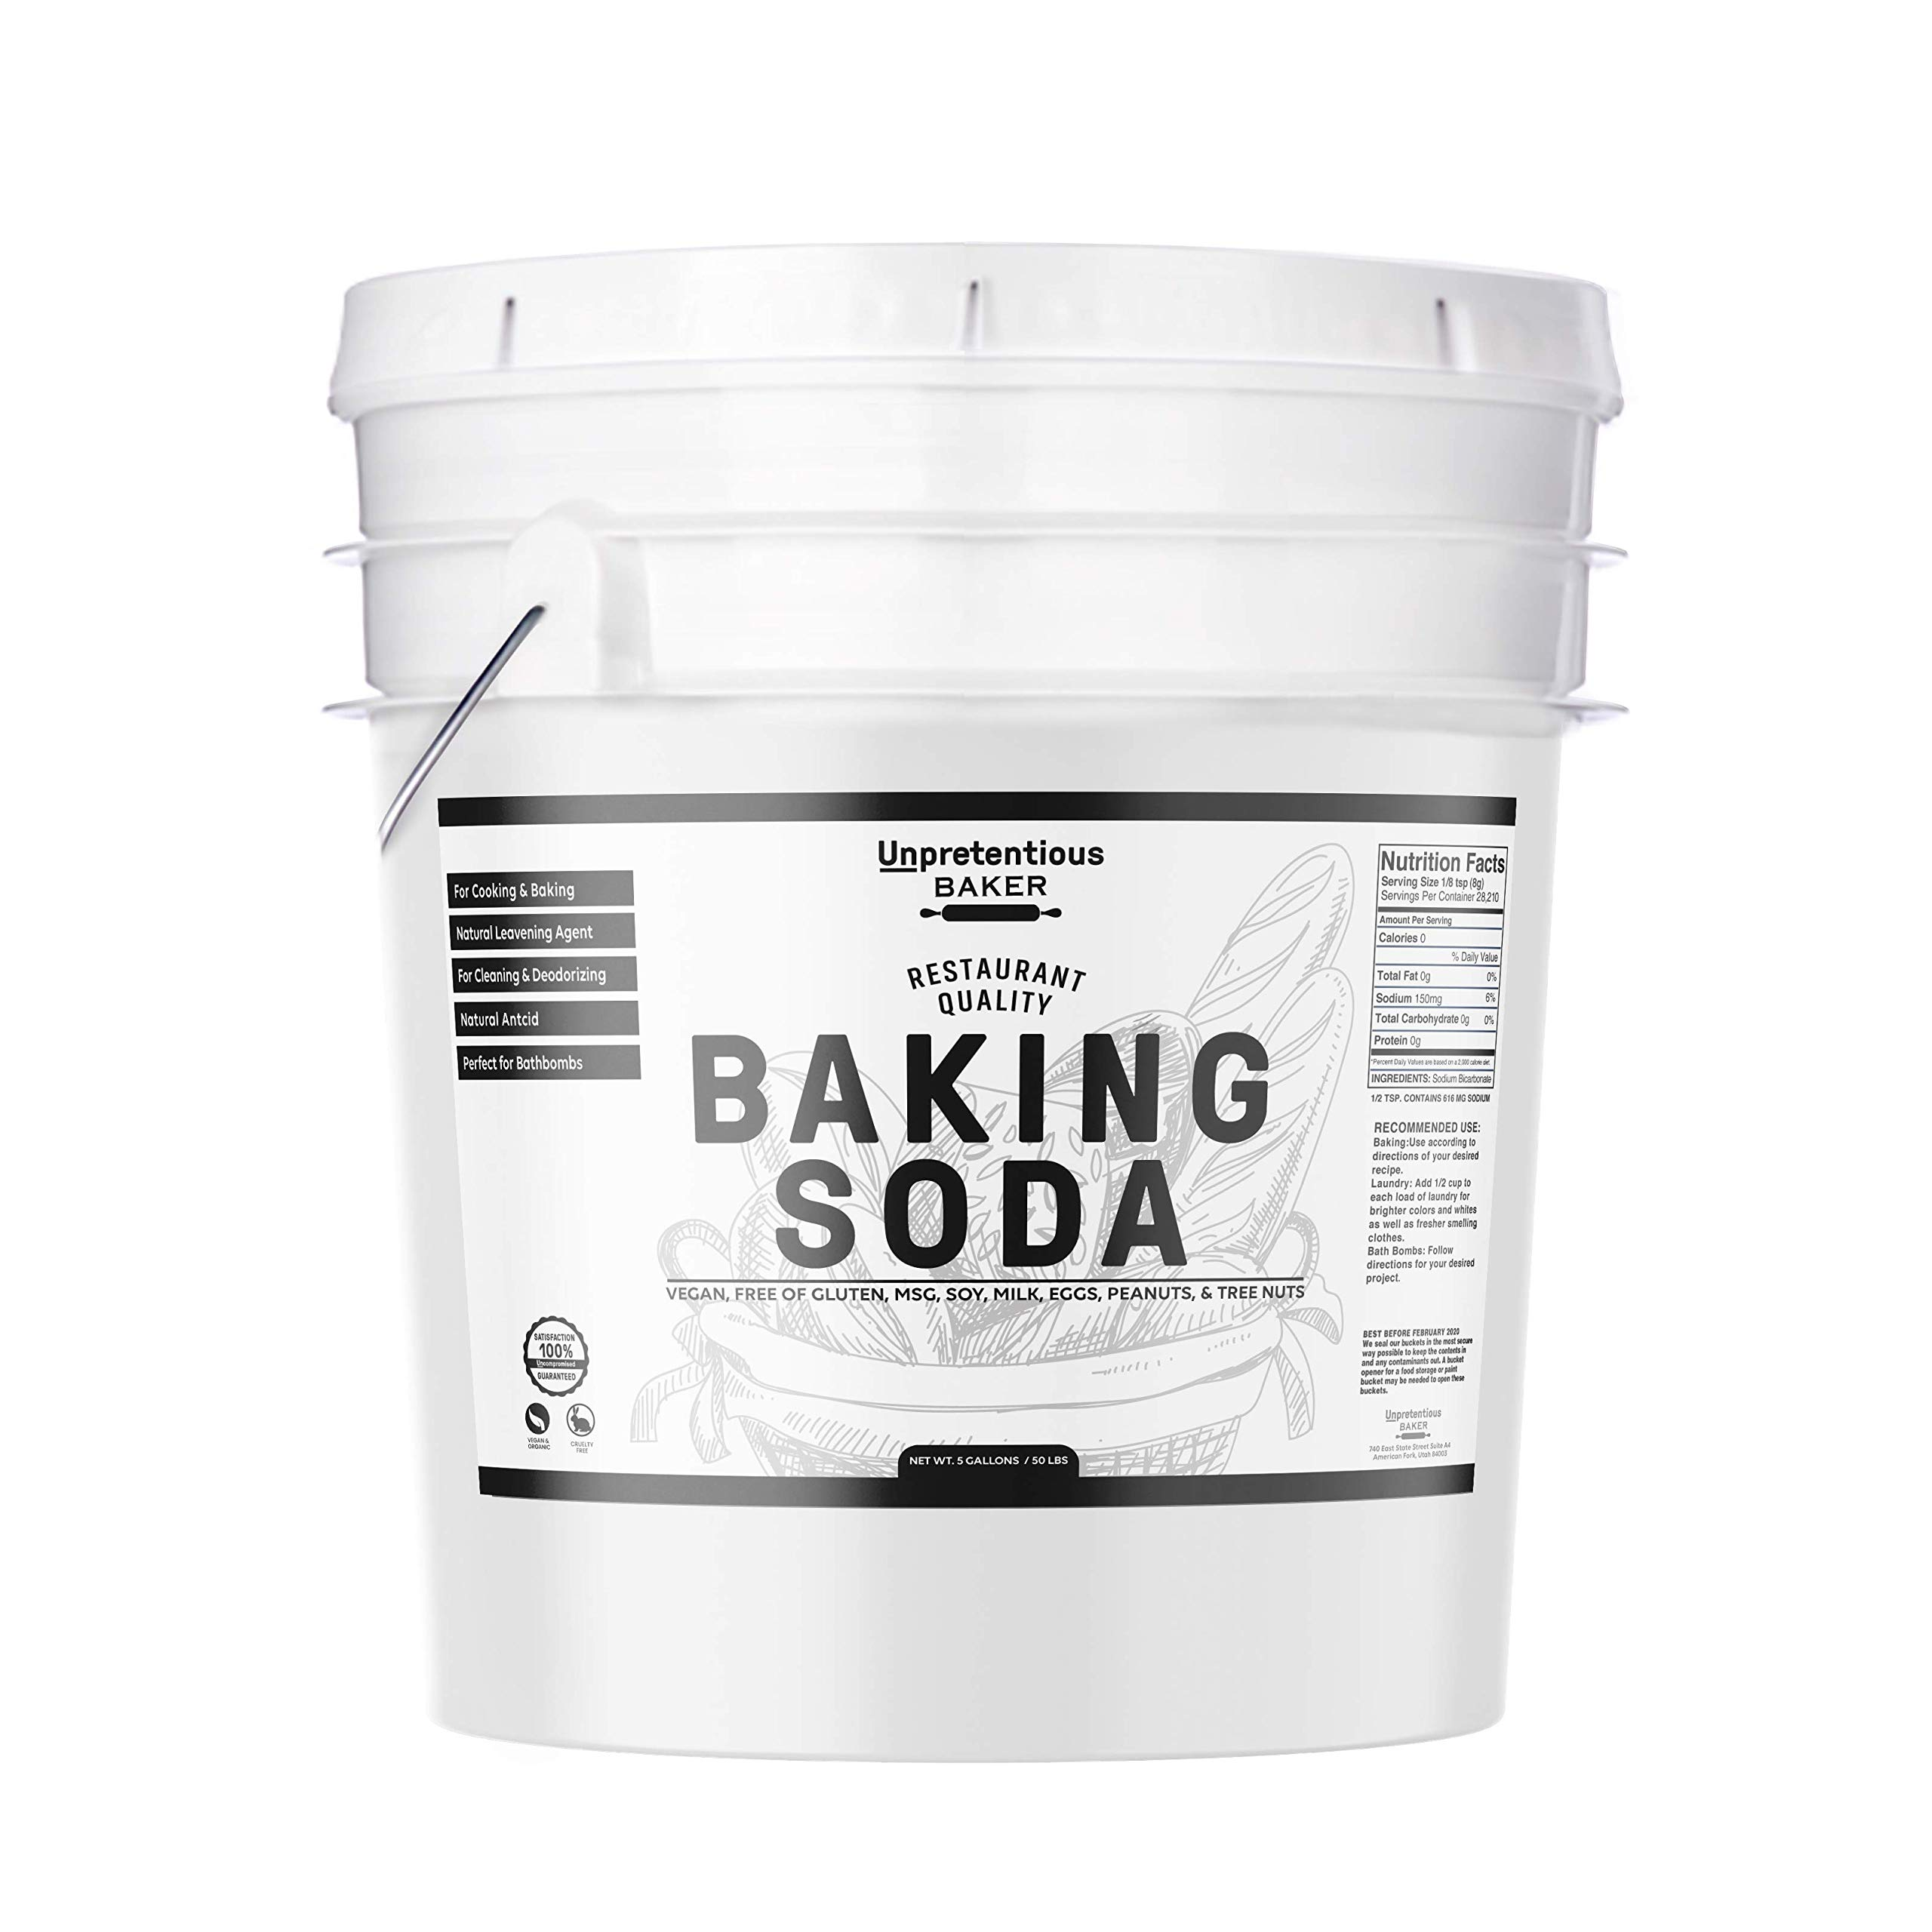 Baking Soda (Sodium Bicarbonate) by Unpretentious Baker, 5 gallon, Resealable Bucket, Restaurant Quality, Highest Purity, Food & USP Pharmaceutical Grade